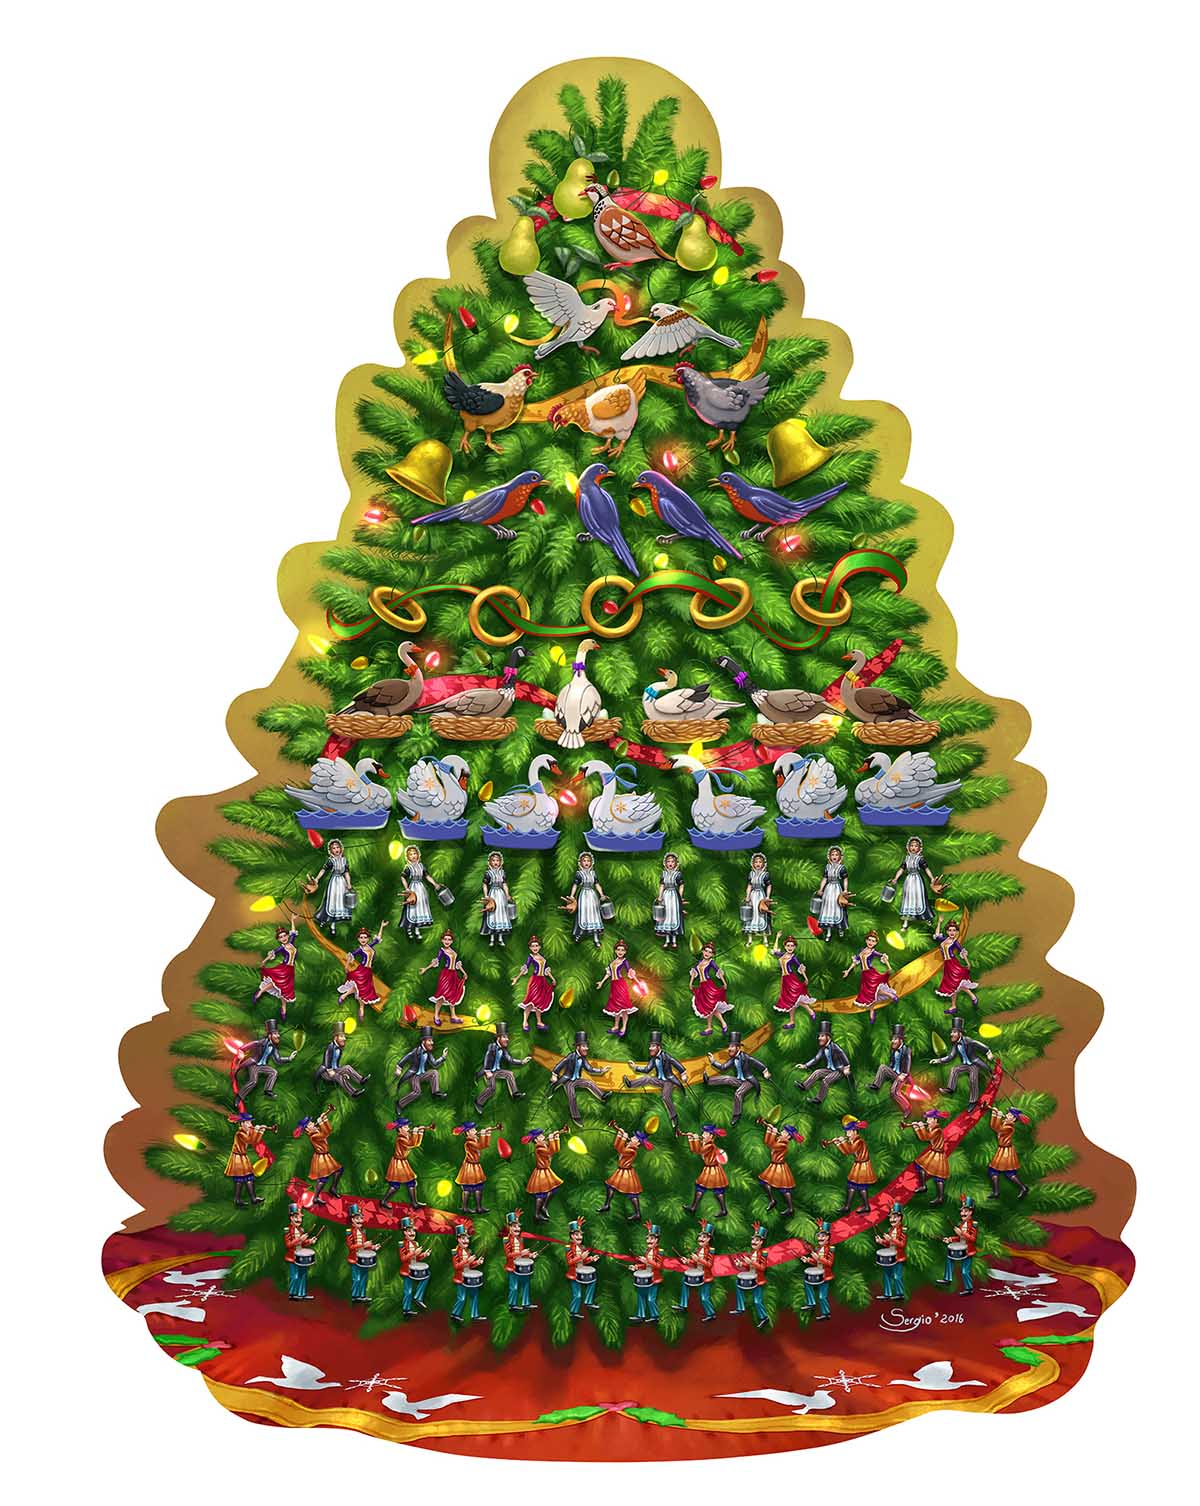 12 Days of Christmas Tree Christmas Shaped Puzzle